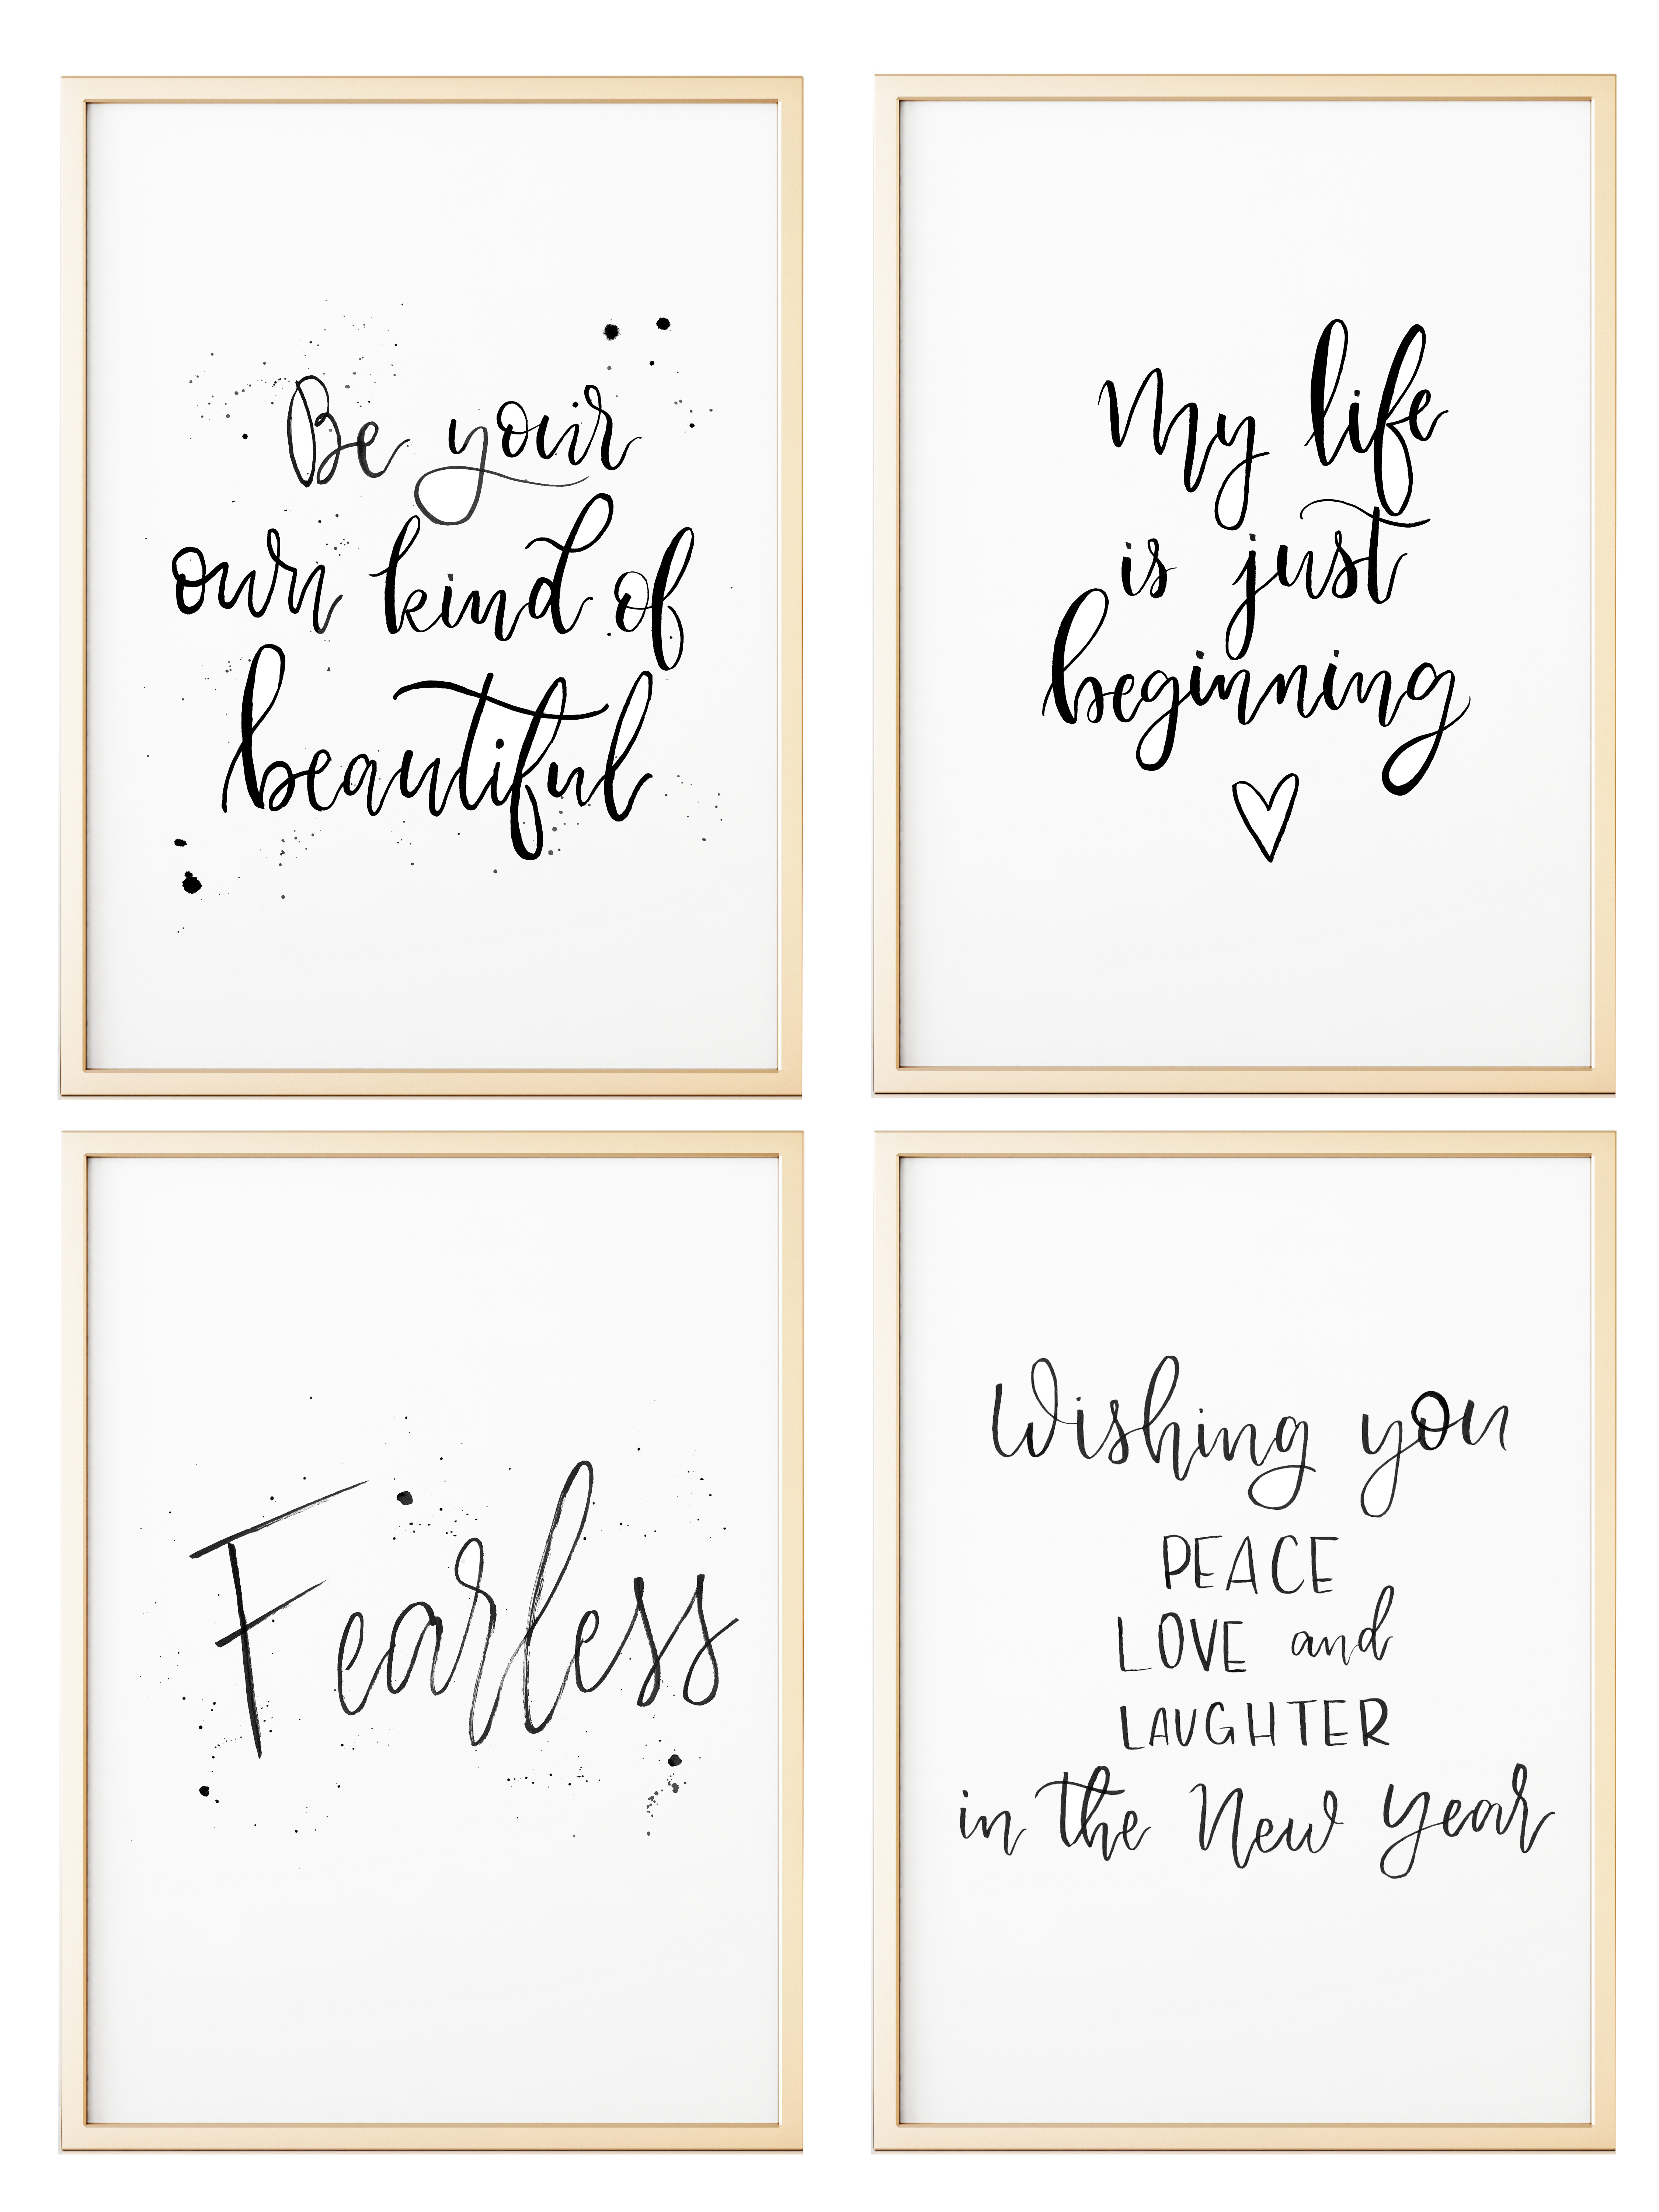 image about Printable Affirmations called Letterpress Confirmation Printables - TINSELBOX